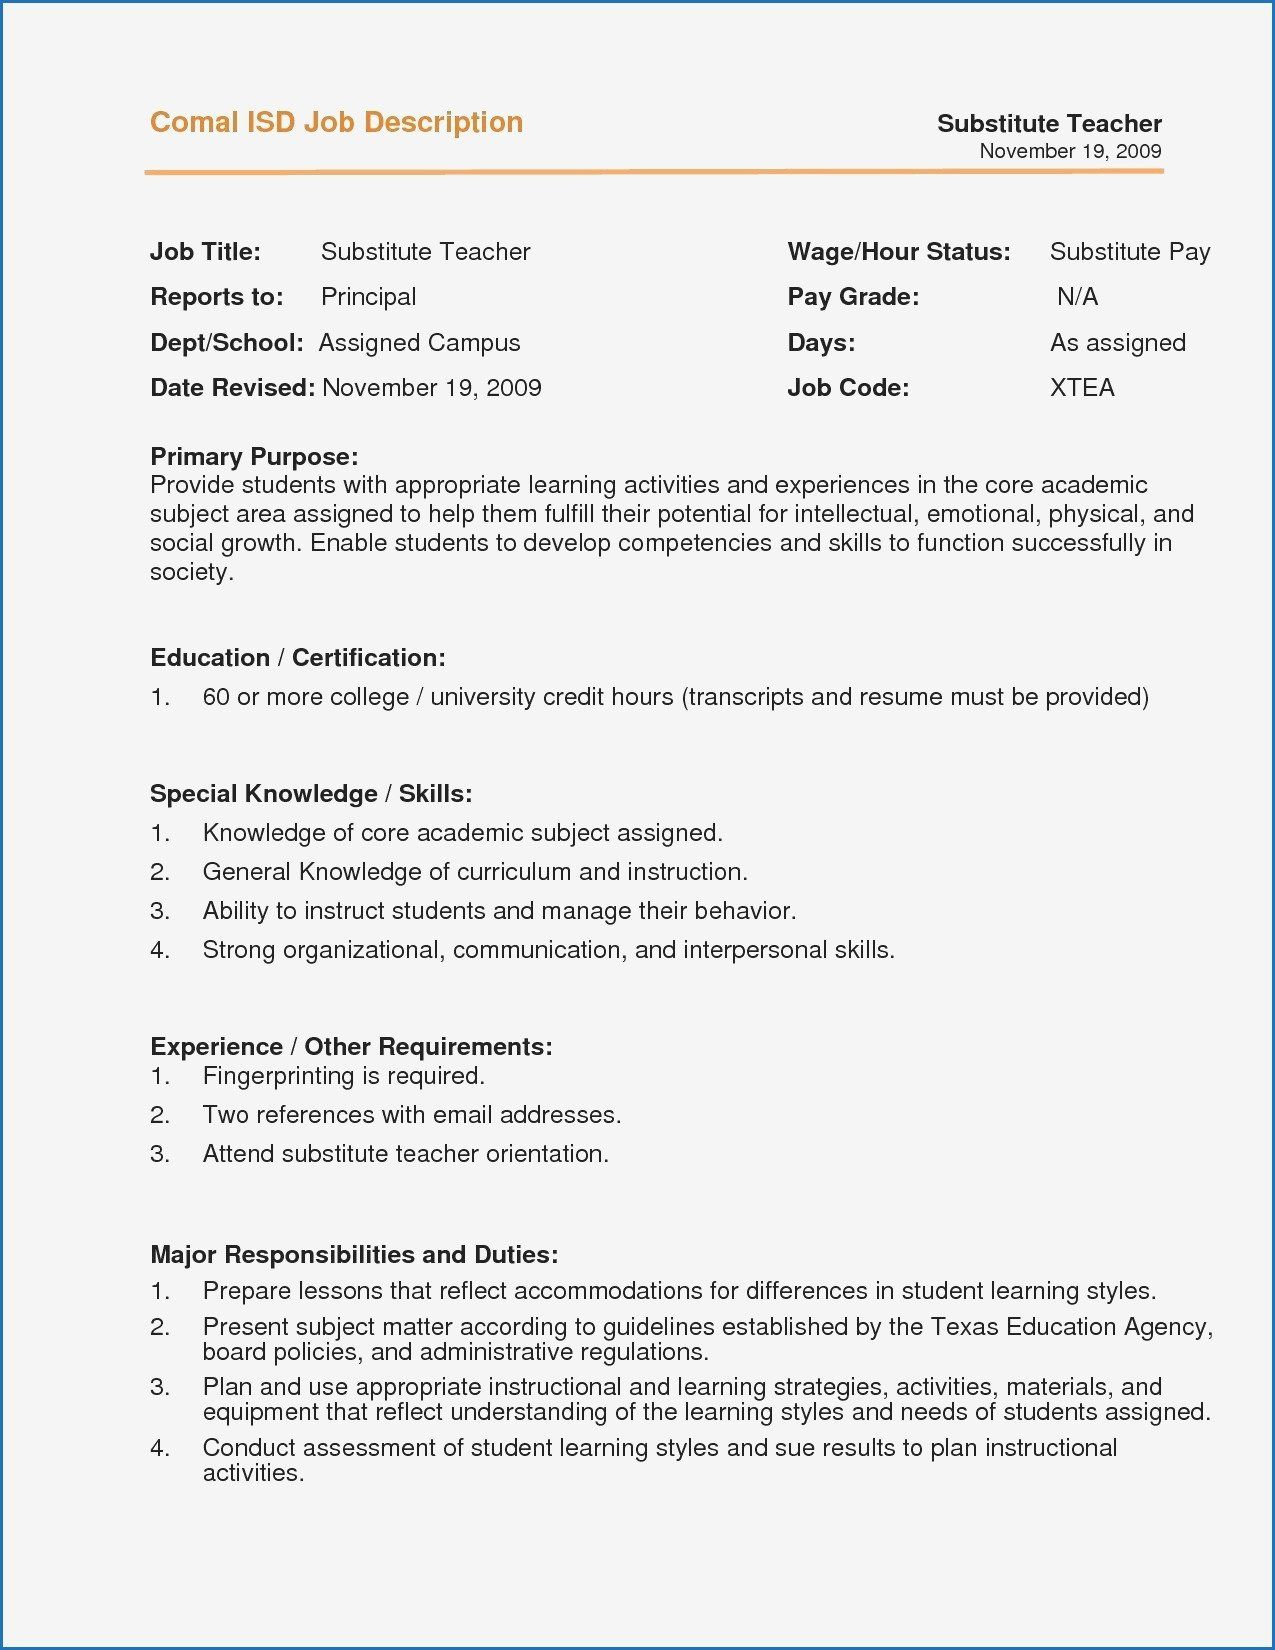 Honors and Awards Resume Examples New Resume Awards